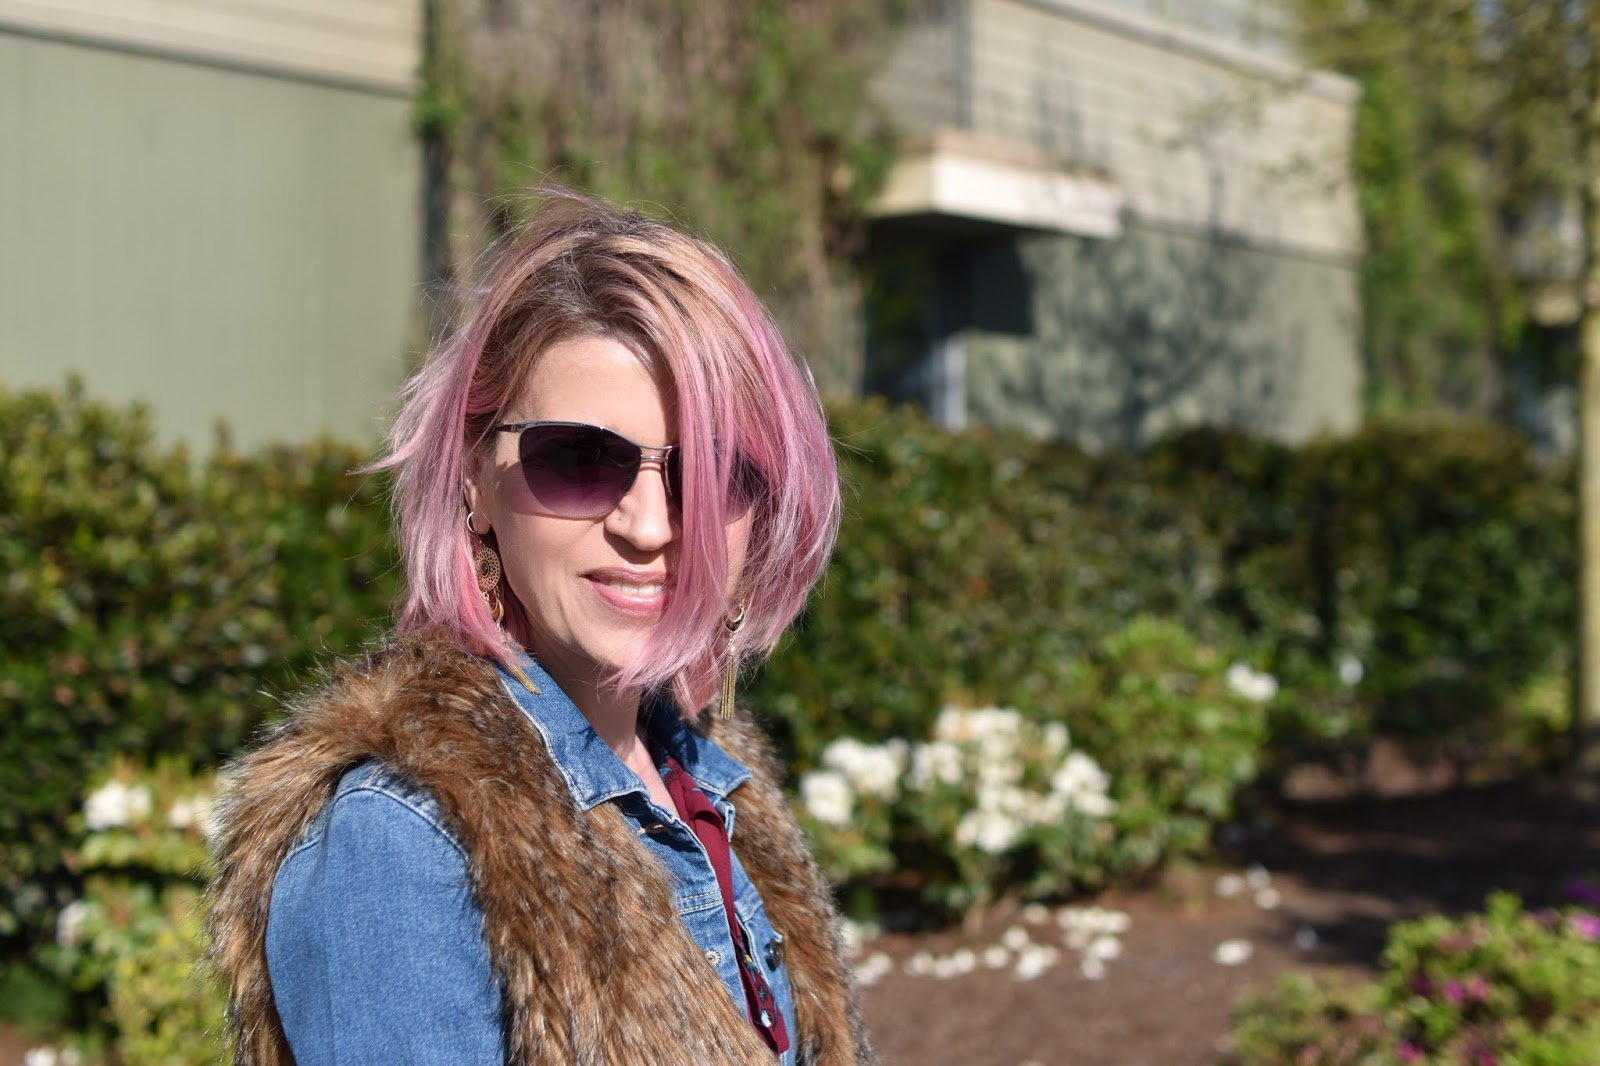 Monika Faulkner outfit inspiration - denim jacket, faux-fur vest, sunglasses